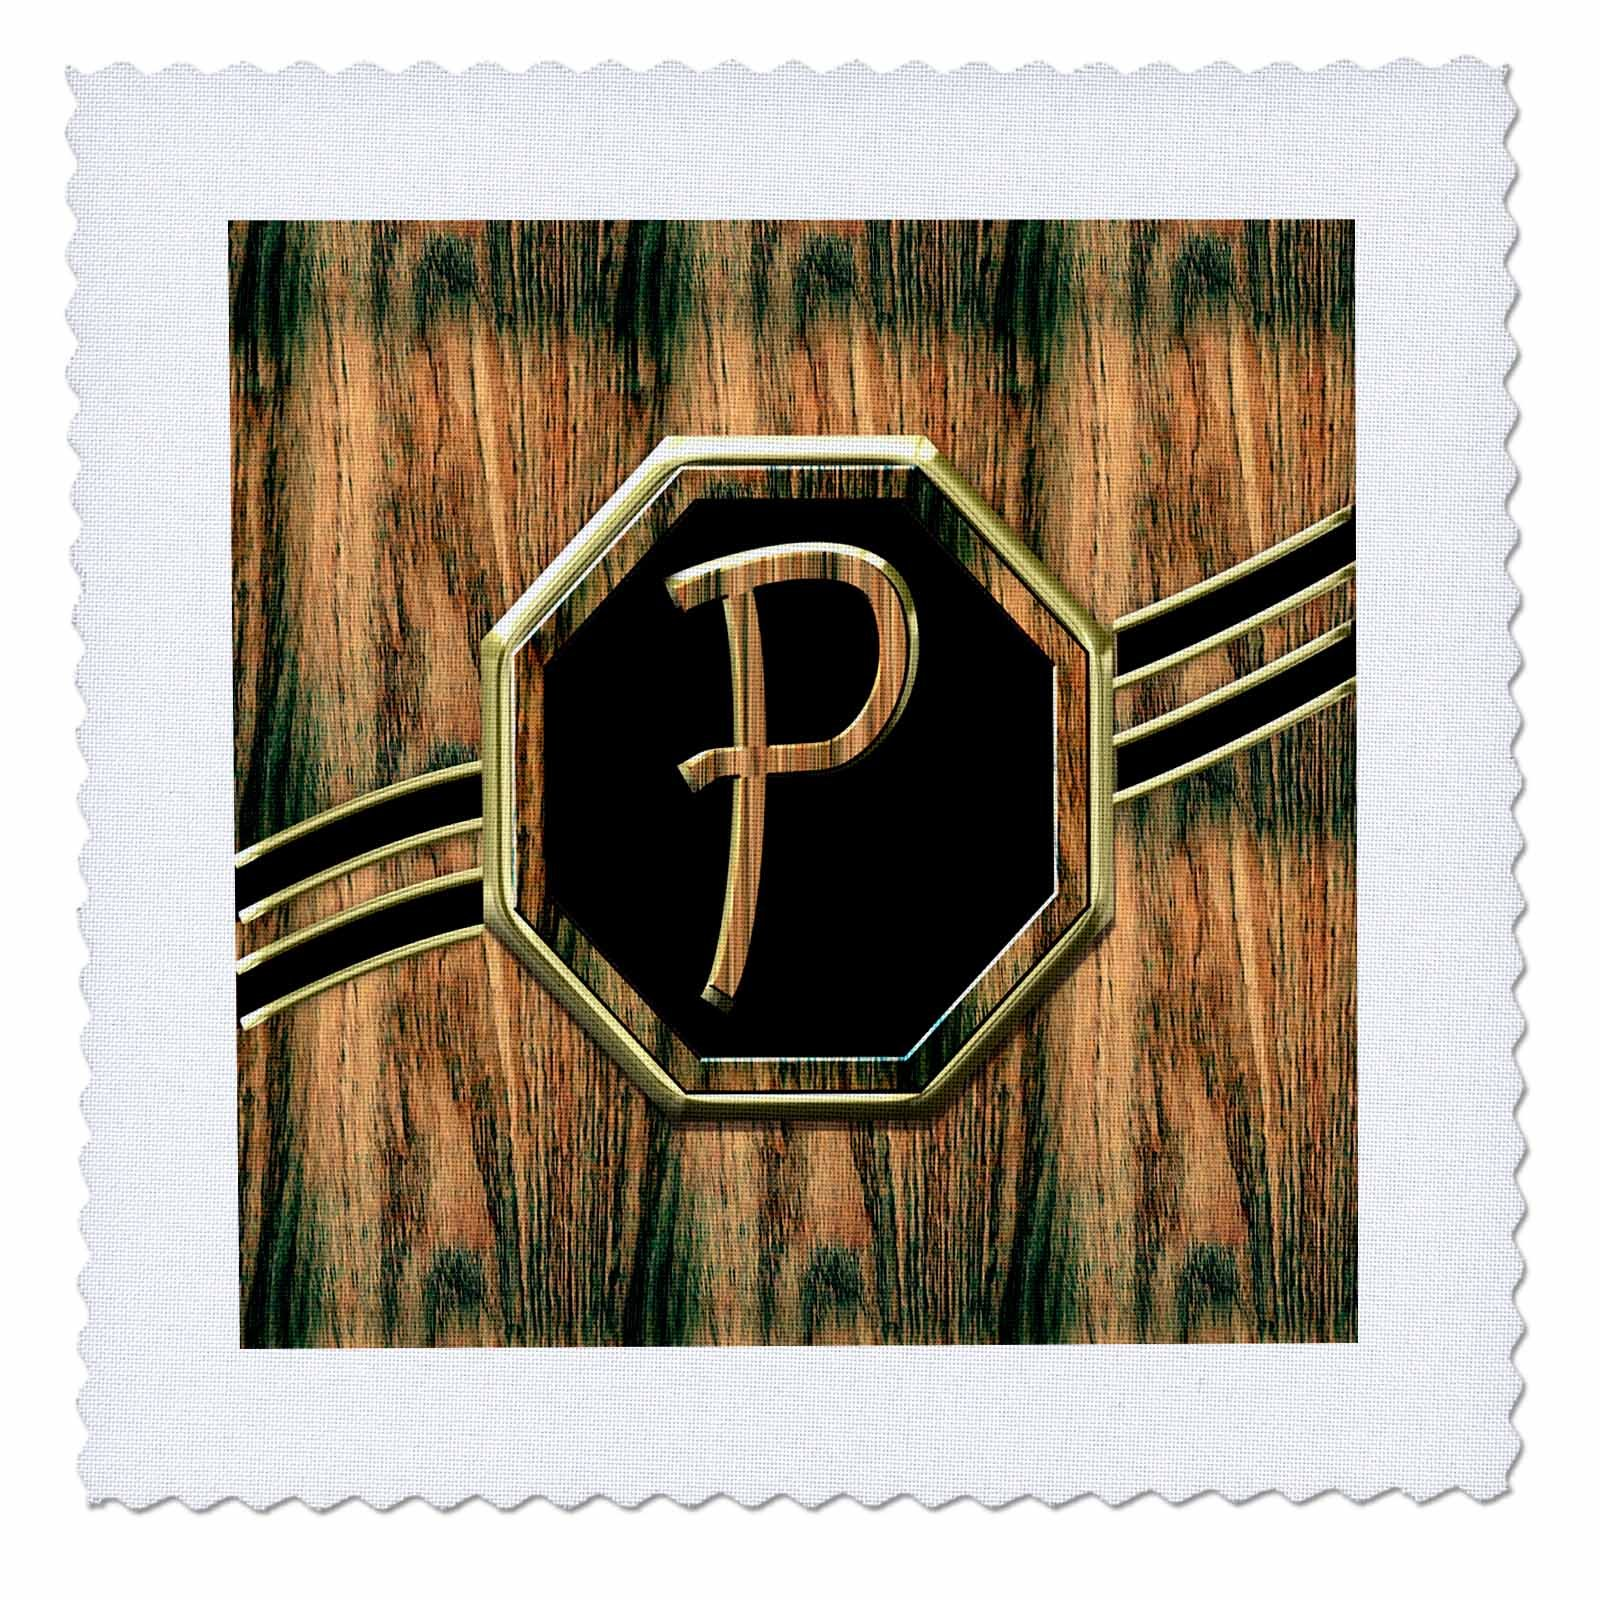 3D Rose Elegant Faux Gold and Wood Grain Monogram Letter P Quilt Square 12 by 12 inch, 12 x 12